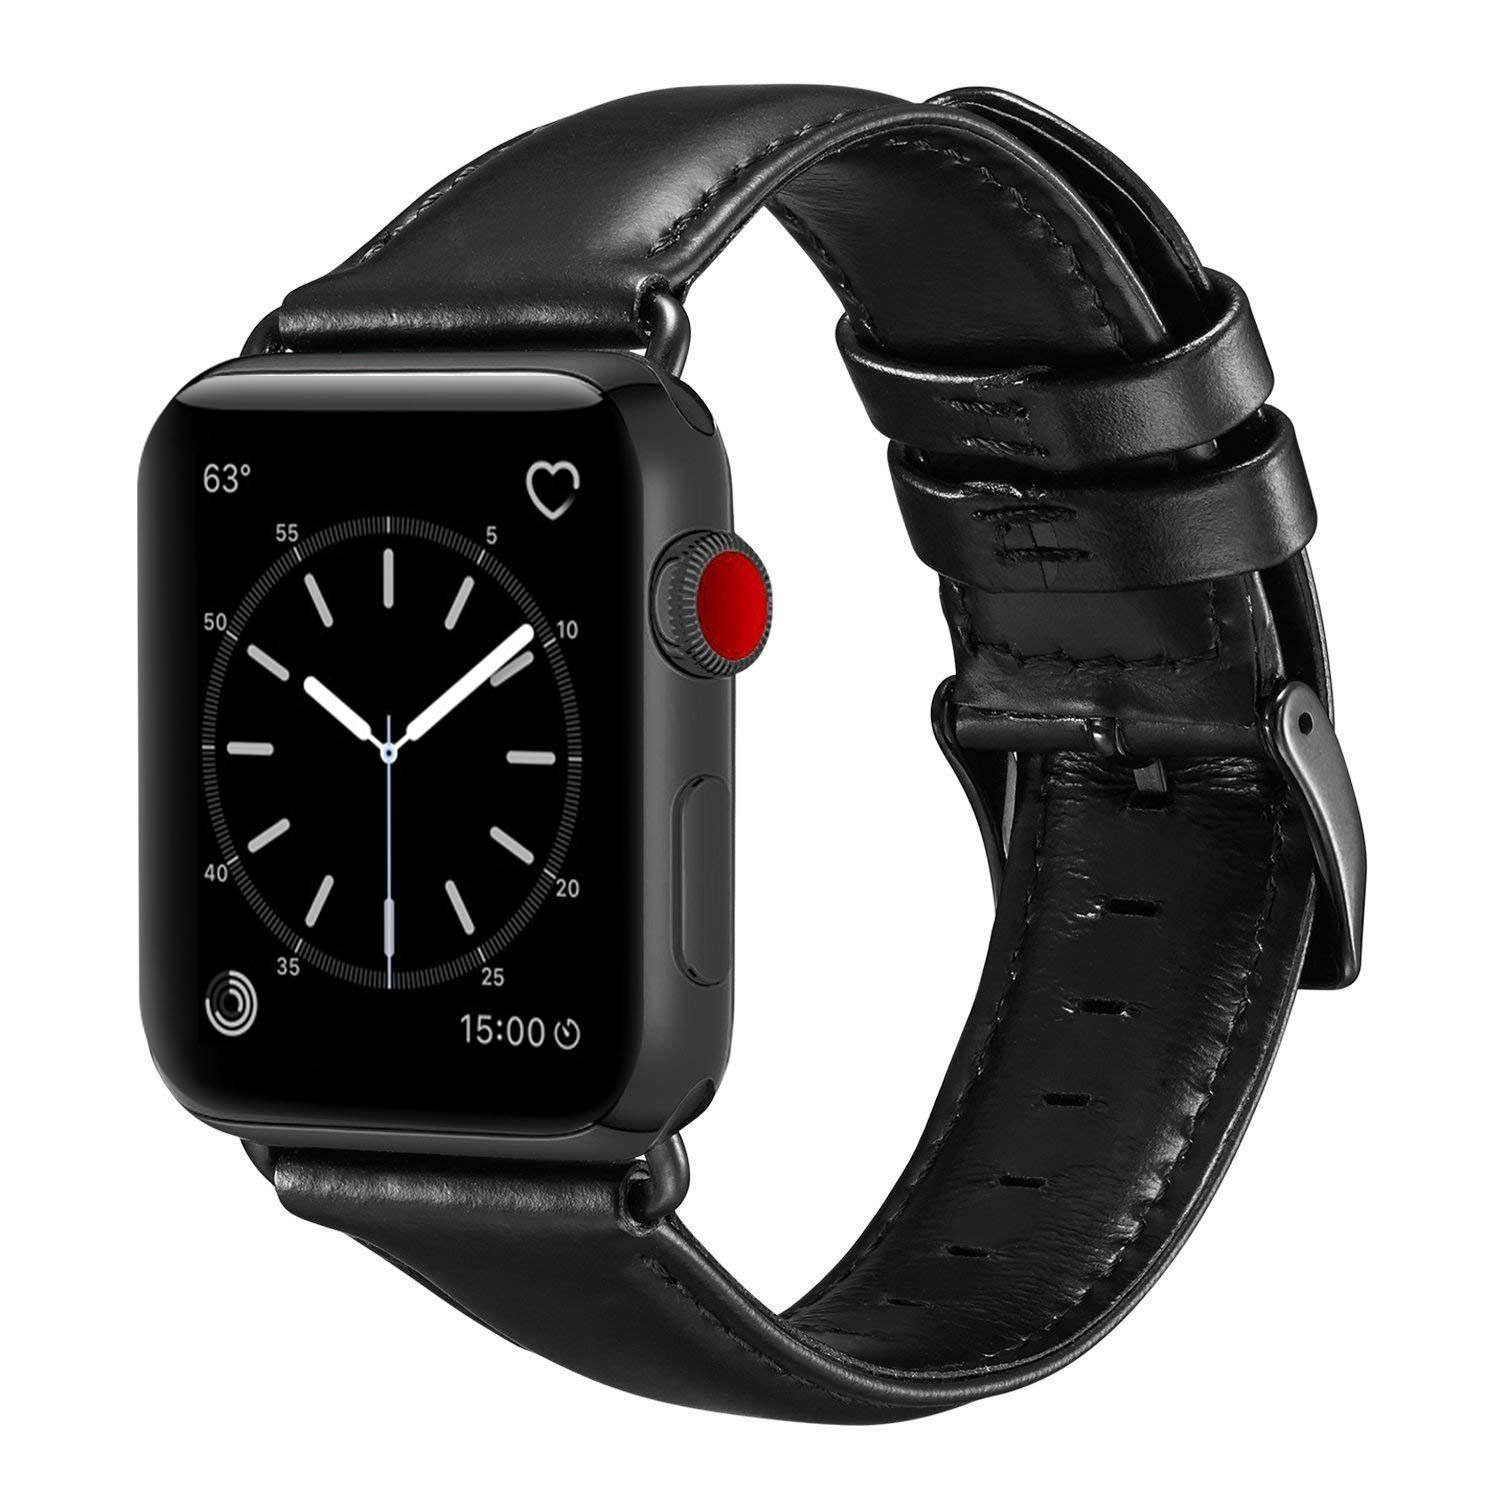 Dây da cho đồng hồ Apple Watch Band 42mm 44mm Sport and